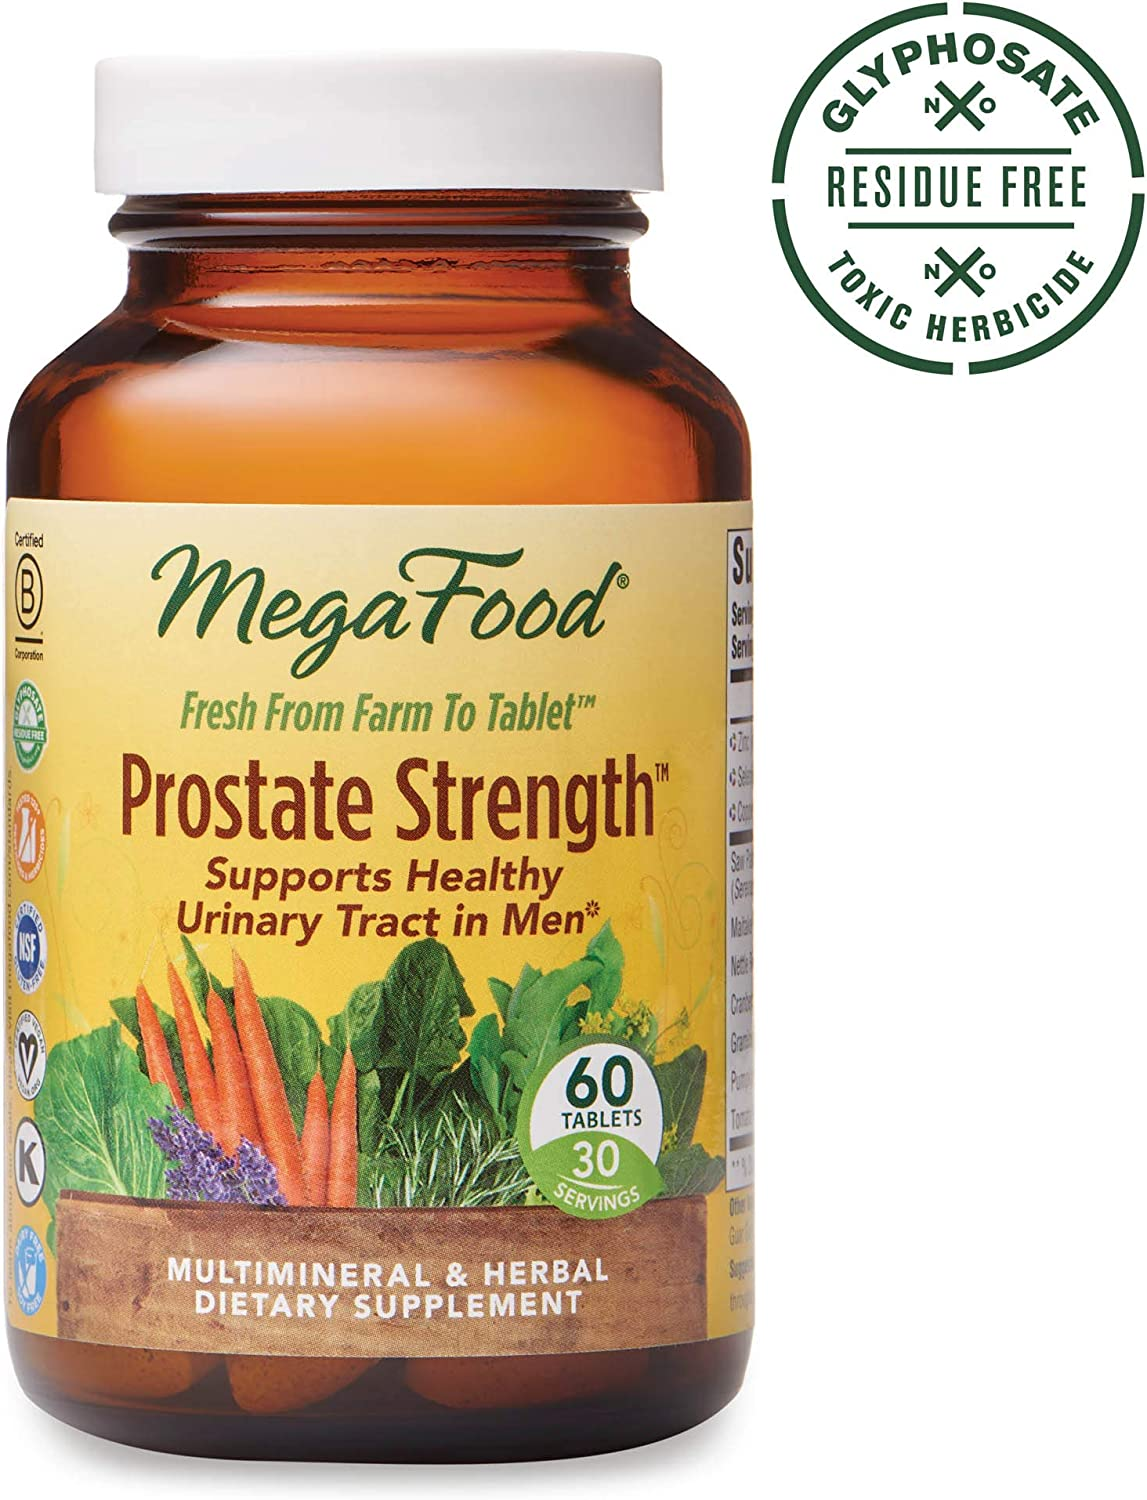 MegaFood, Prostate Strength, Supports Healthy Urinary Function in Men, Multimineral and Herbal Supplement, Vegan, 60 Tablets 30 Servings FFP